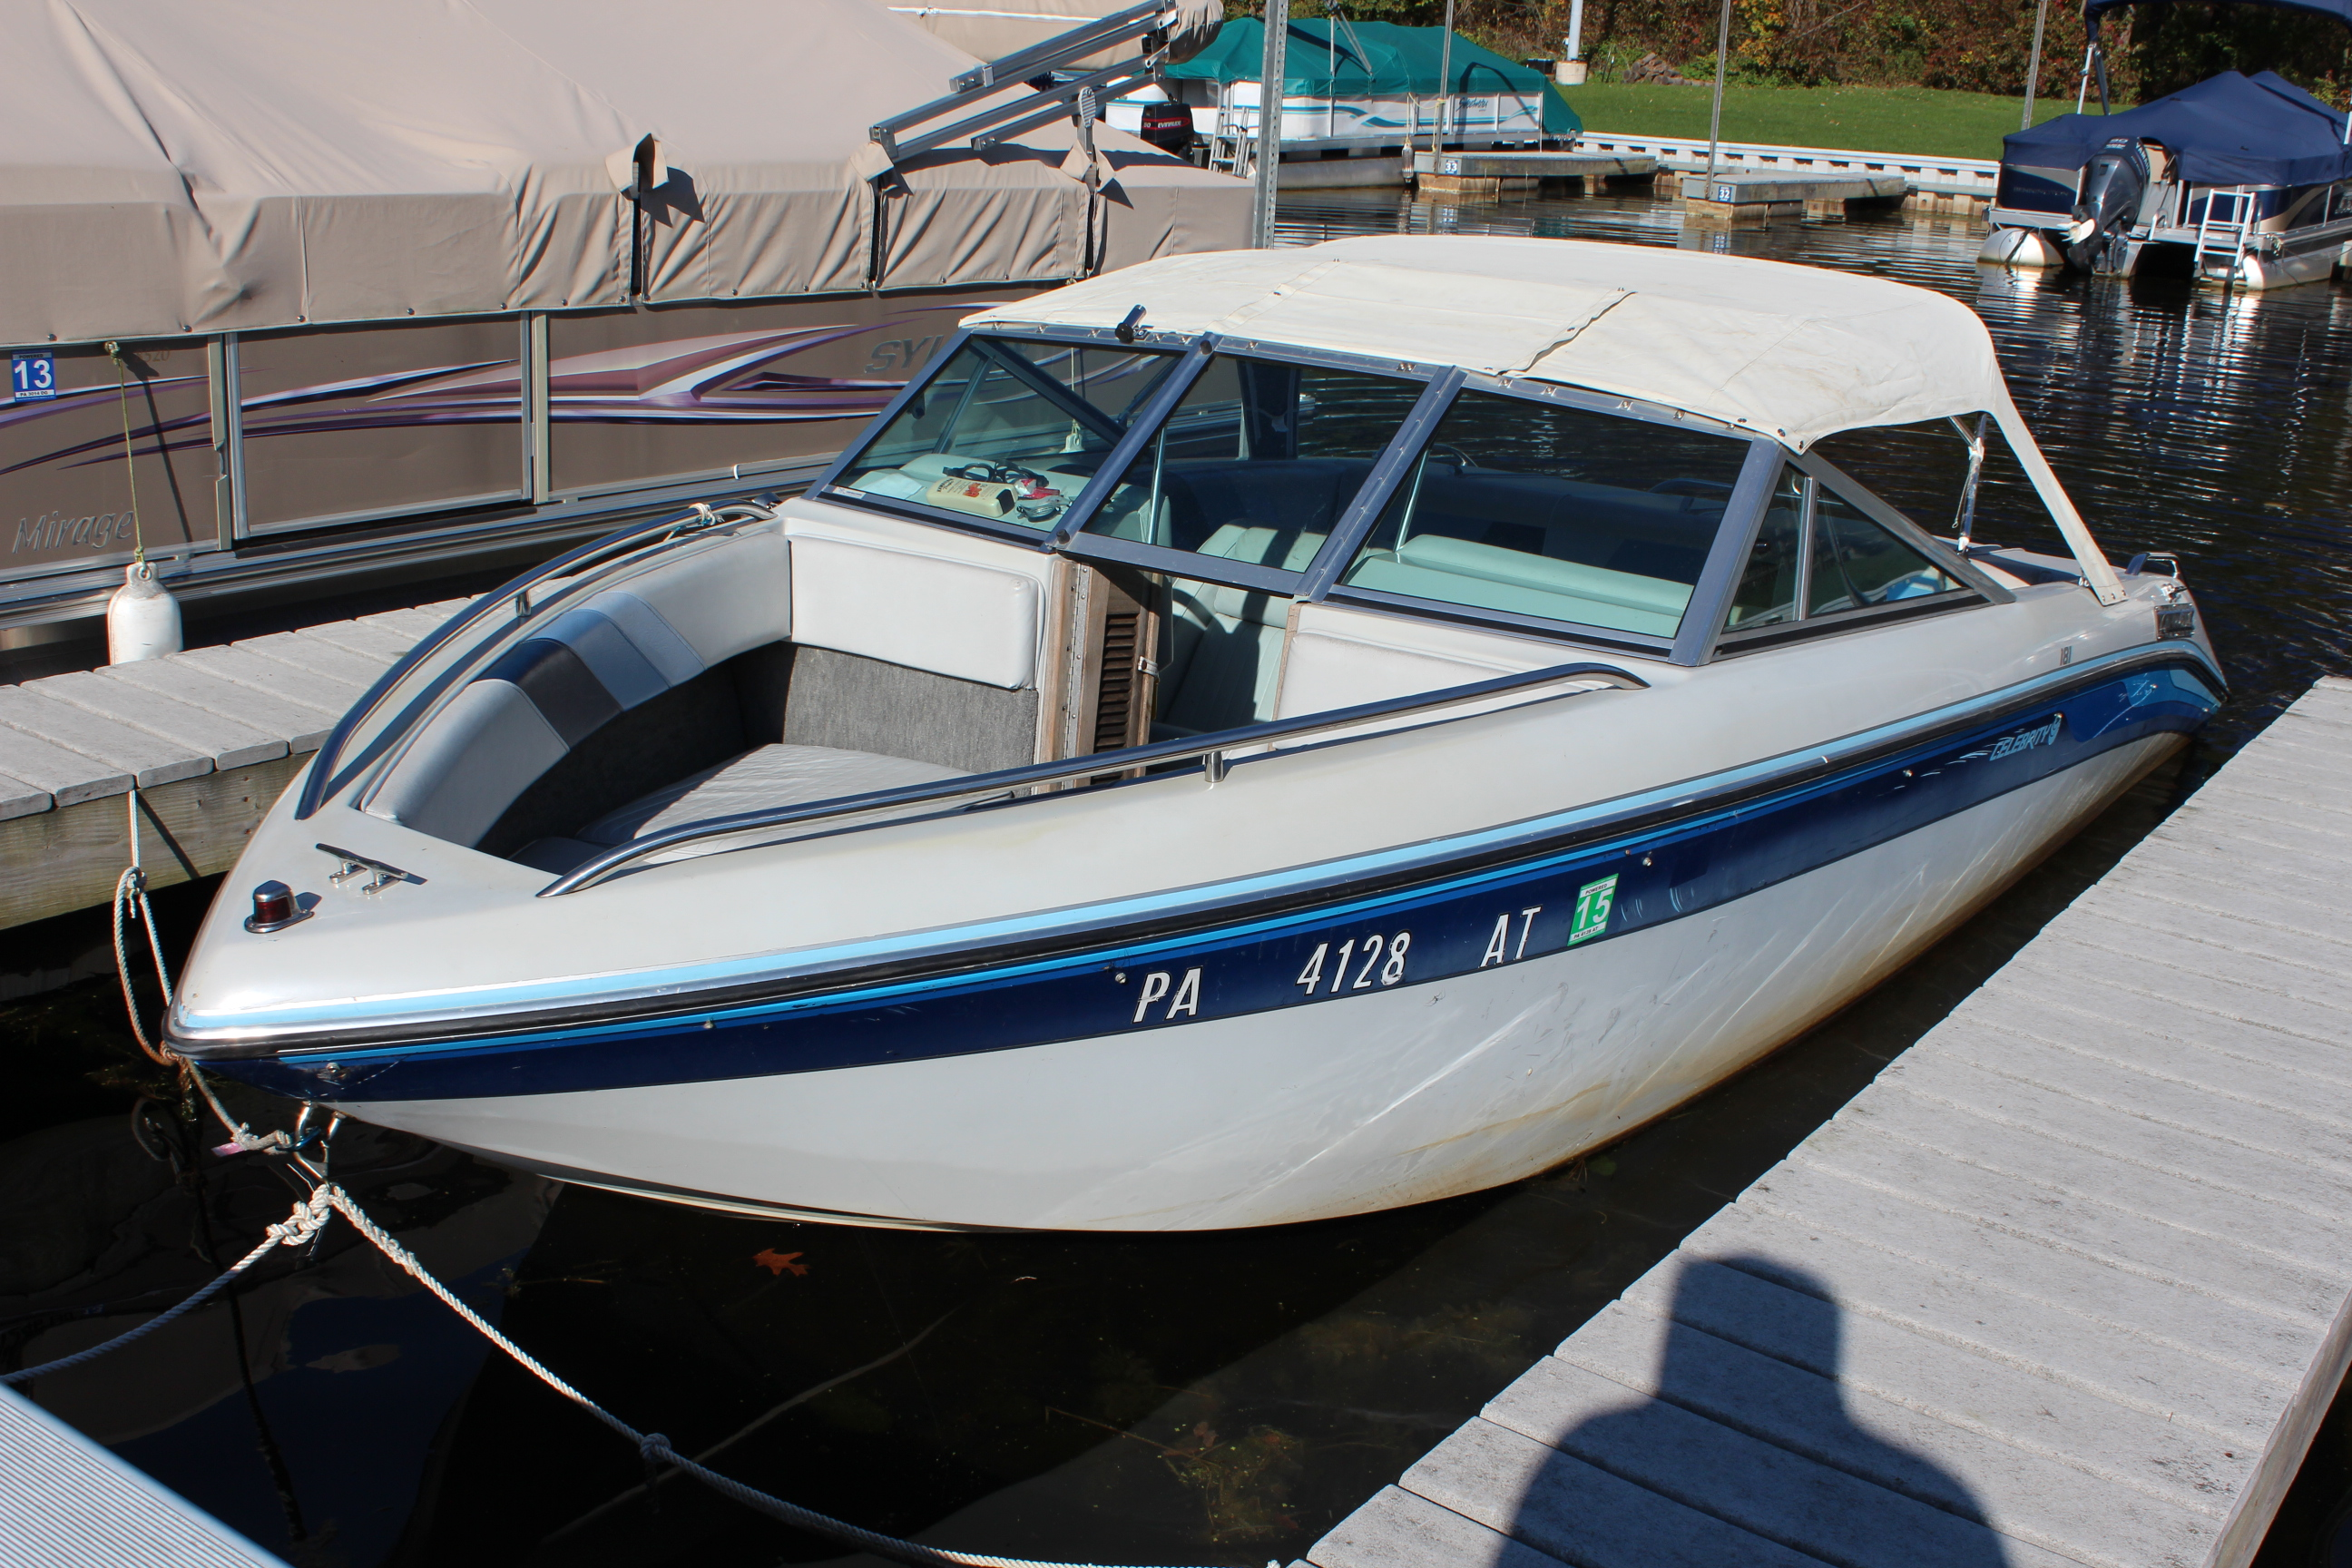 1989 Celebrity Exhaust Hose Kit For Sale - Boat Parts And ...